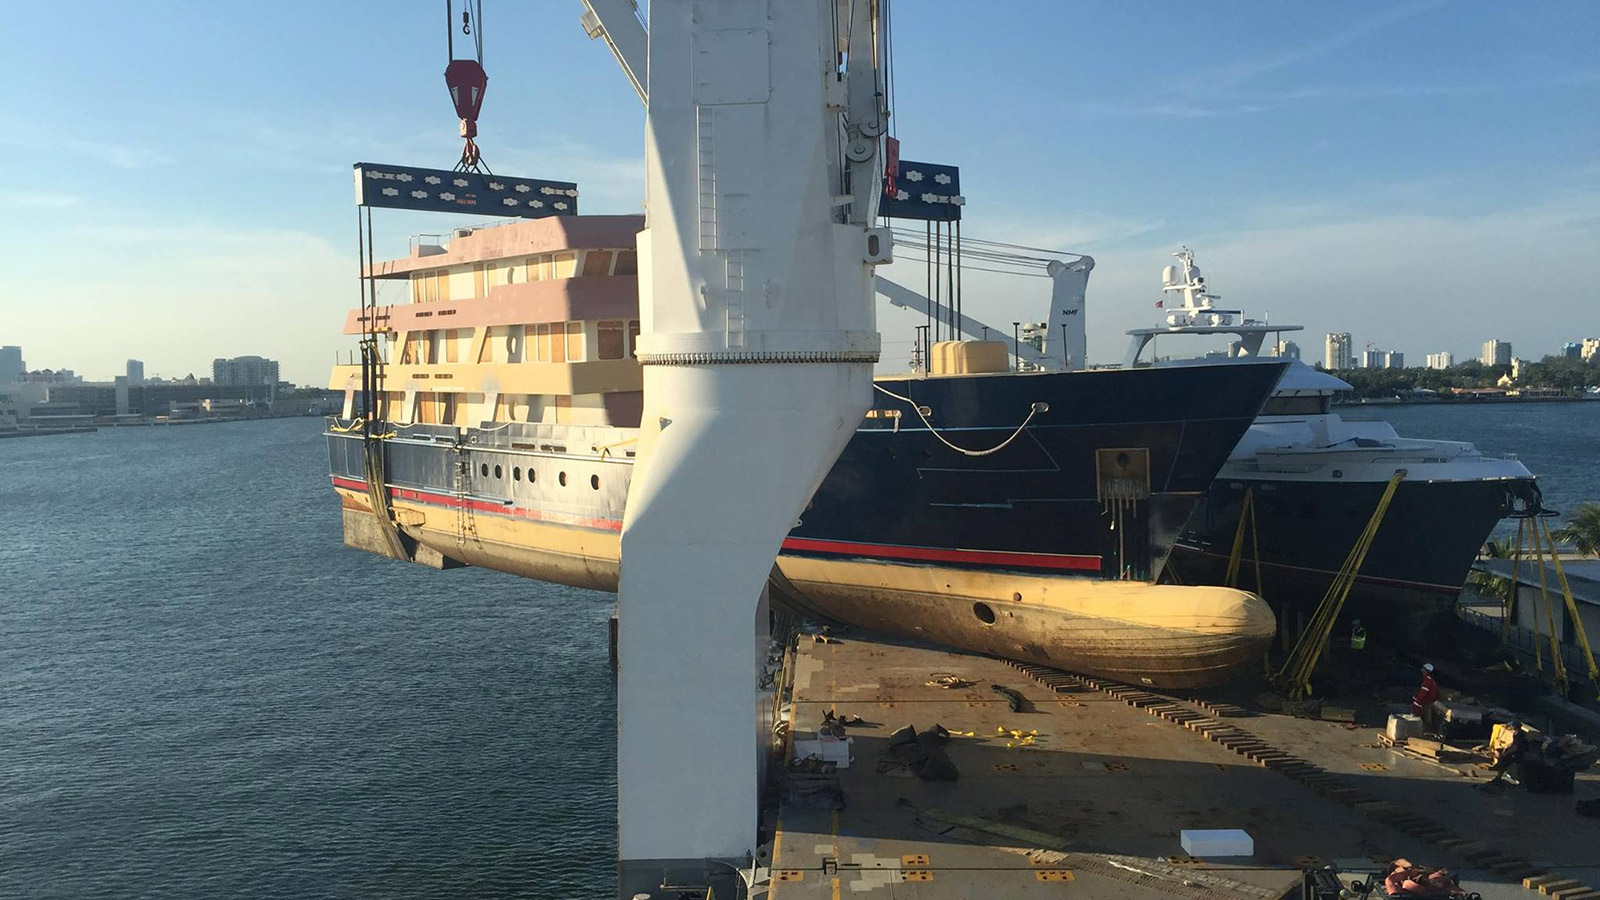 the-in-build-newcastle-marine-explorer-yacht-ulucitcan-leaves-florida